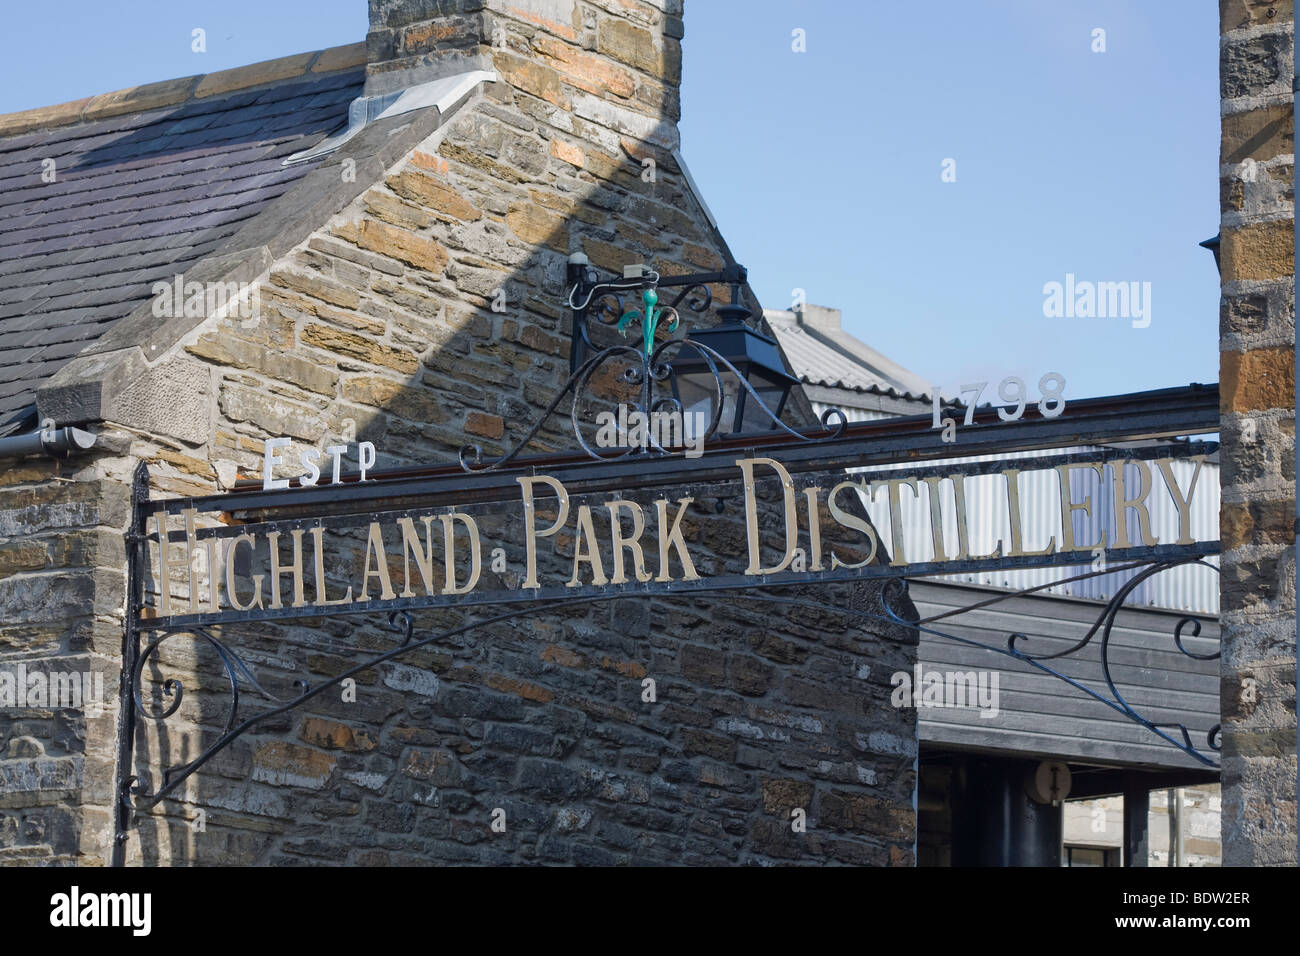 Eingang, entrance, highland park distillery in kirkwall, orkney islands, scotland Stock Photo